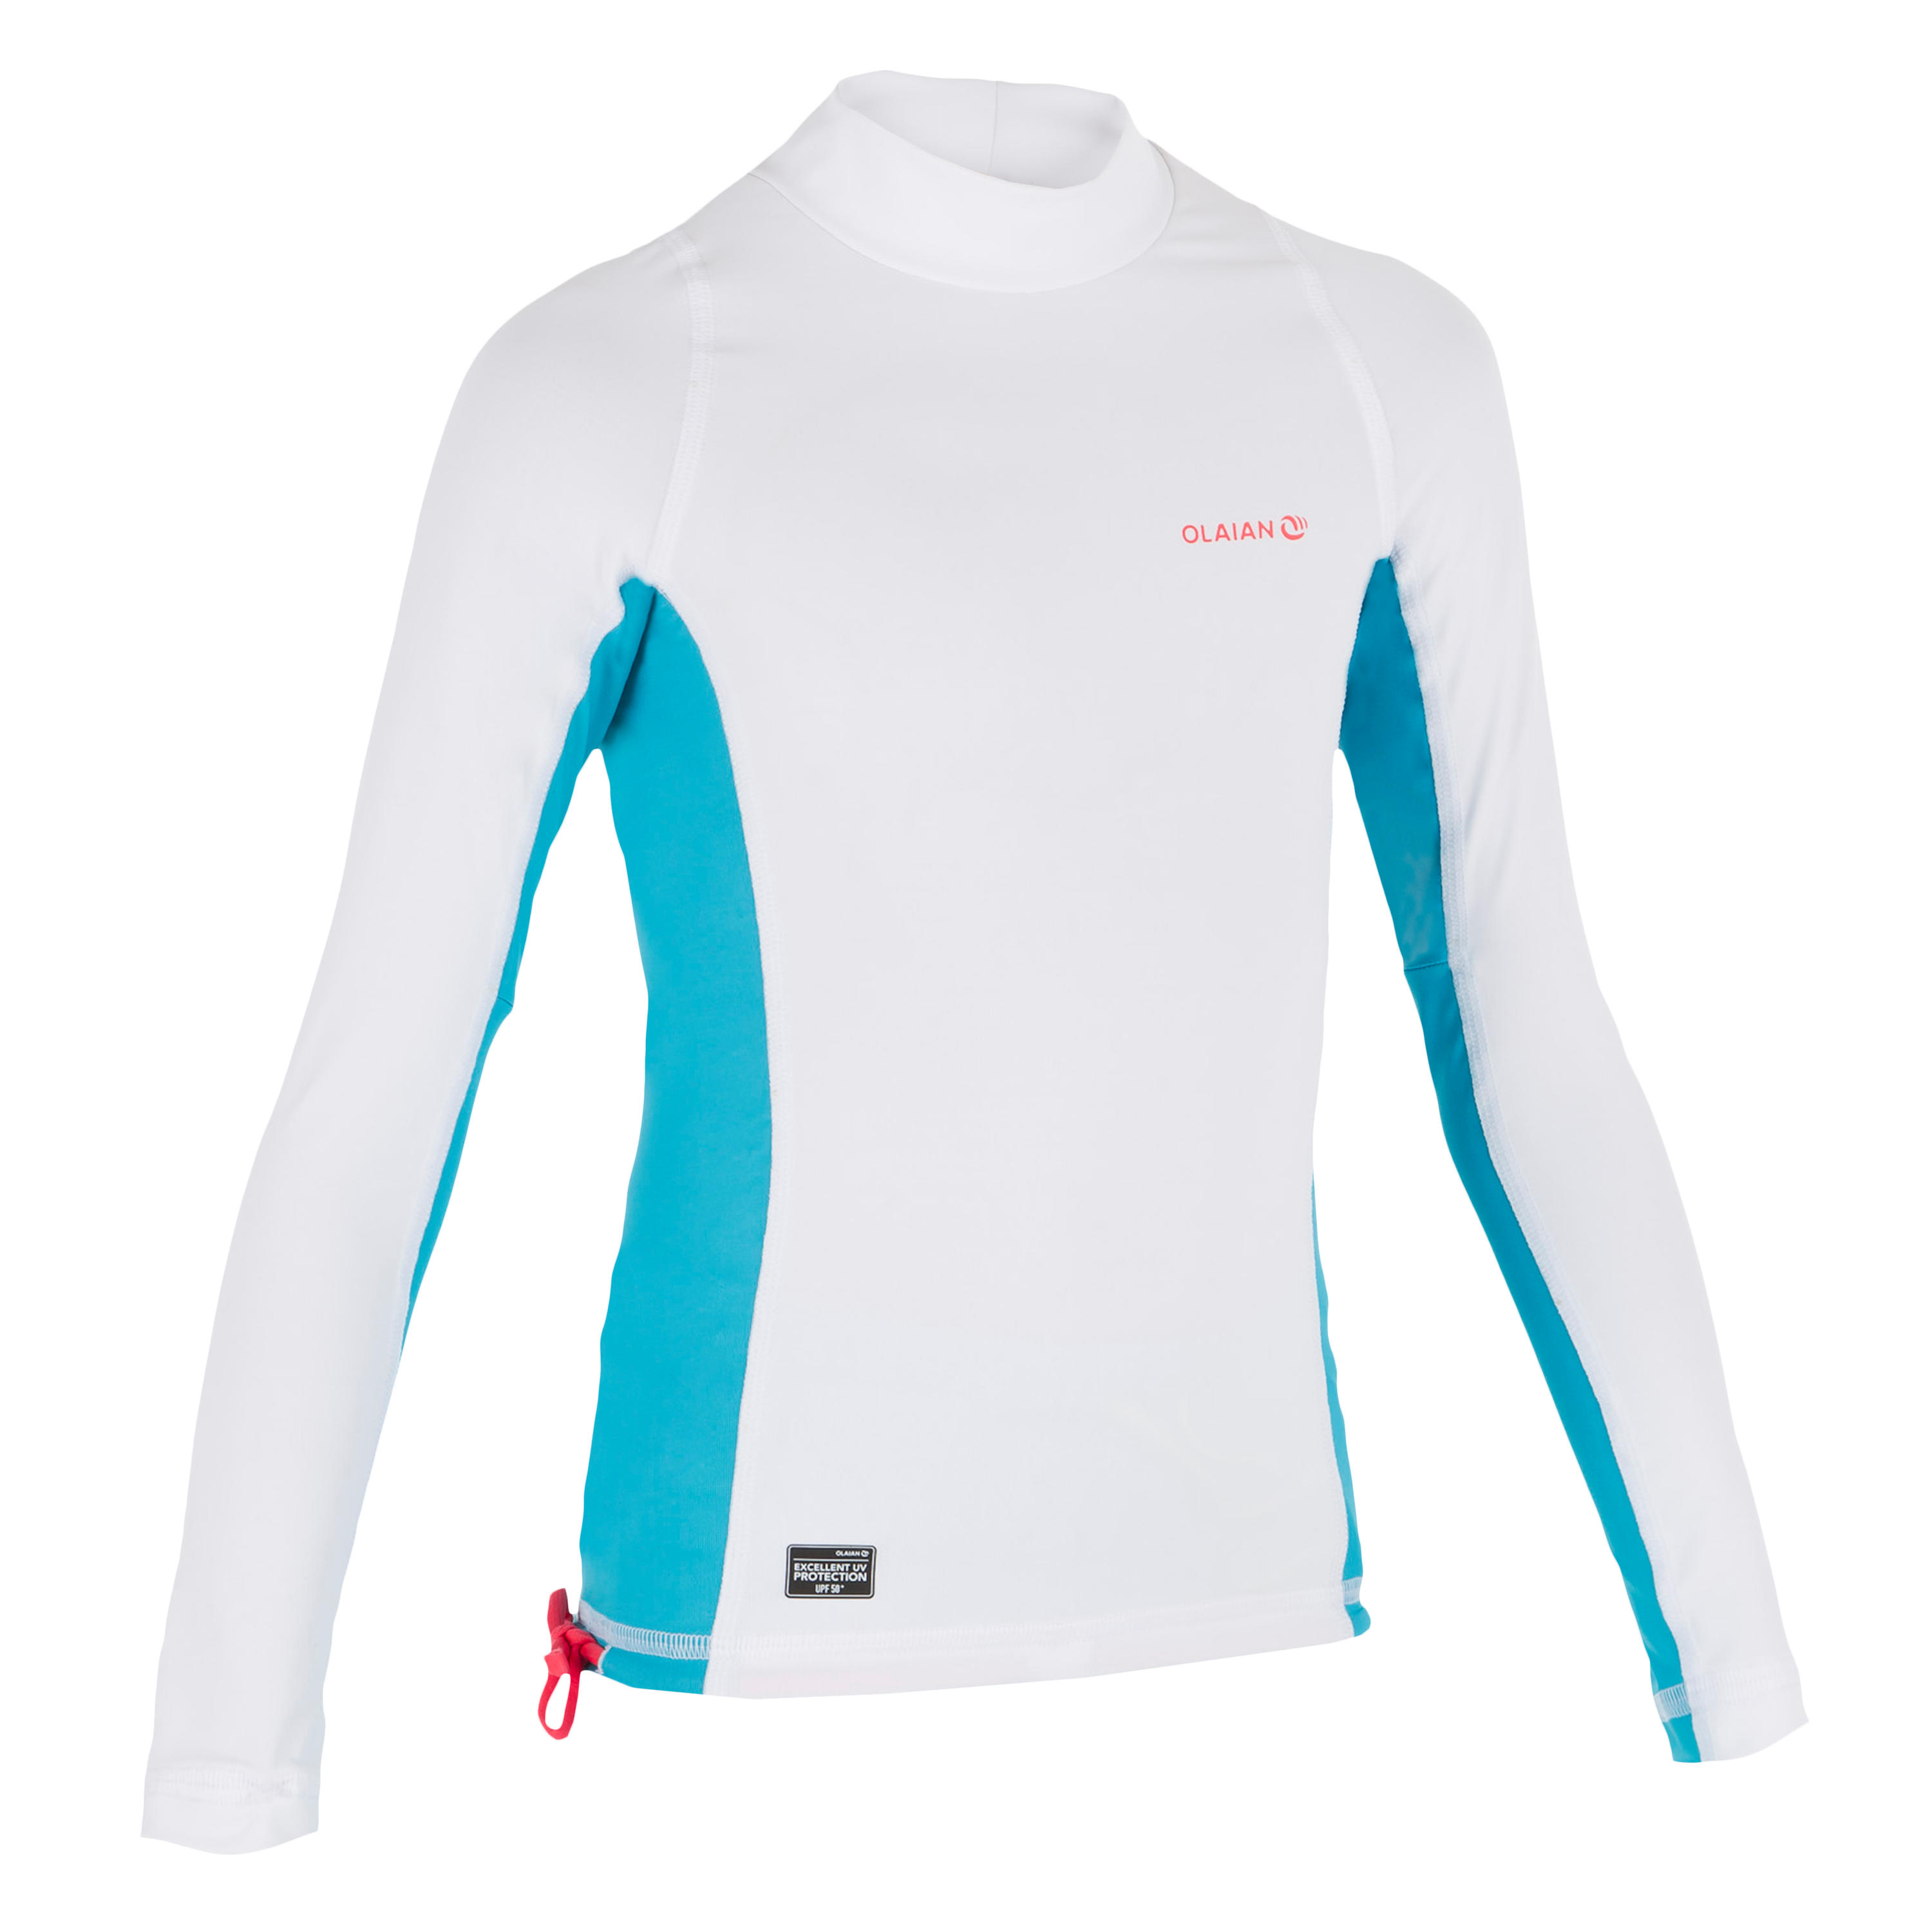 500 Child's Long Sleeve UV Protection Surfing Top T-Shirt - White Blue